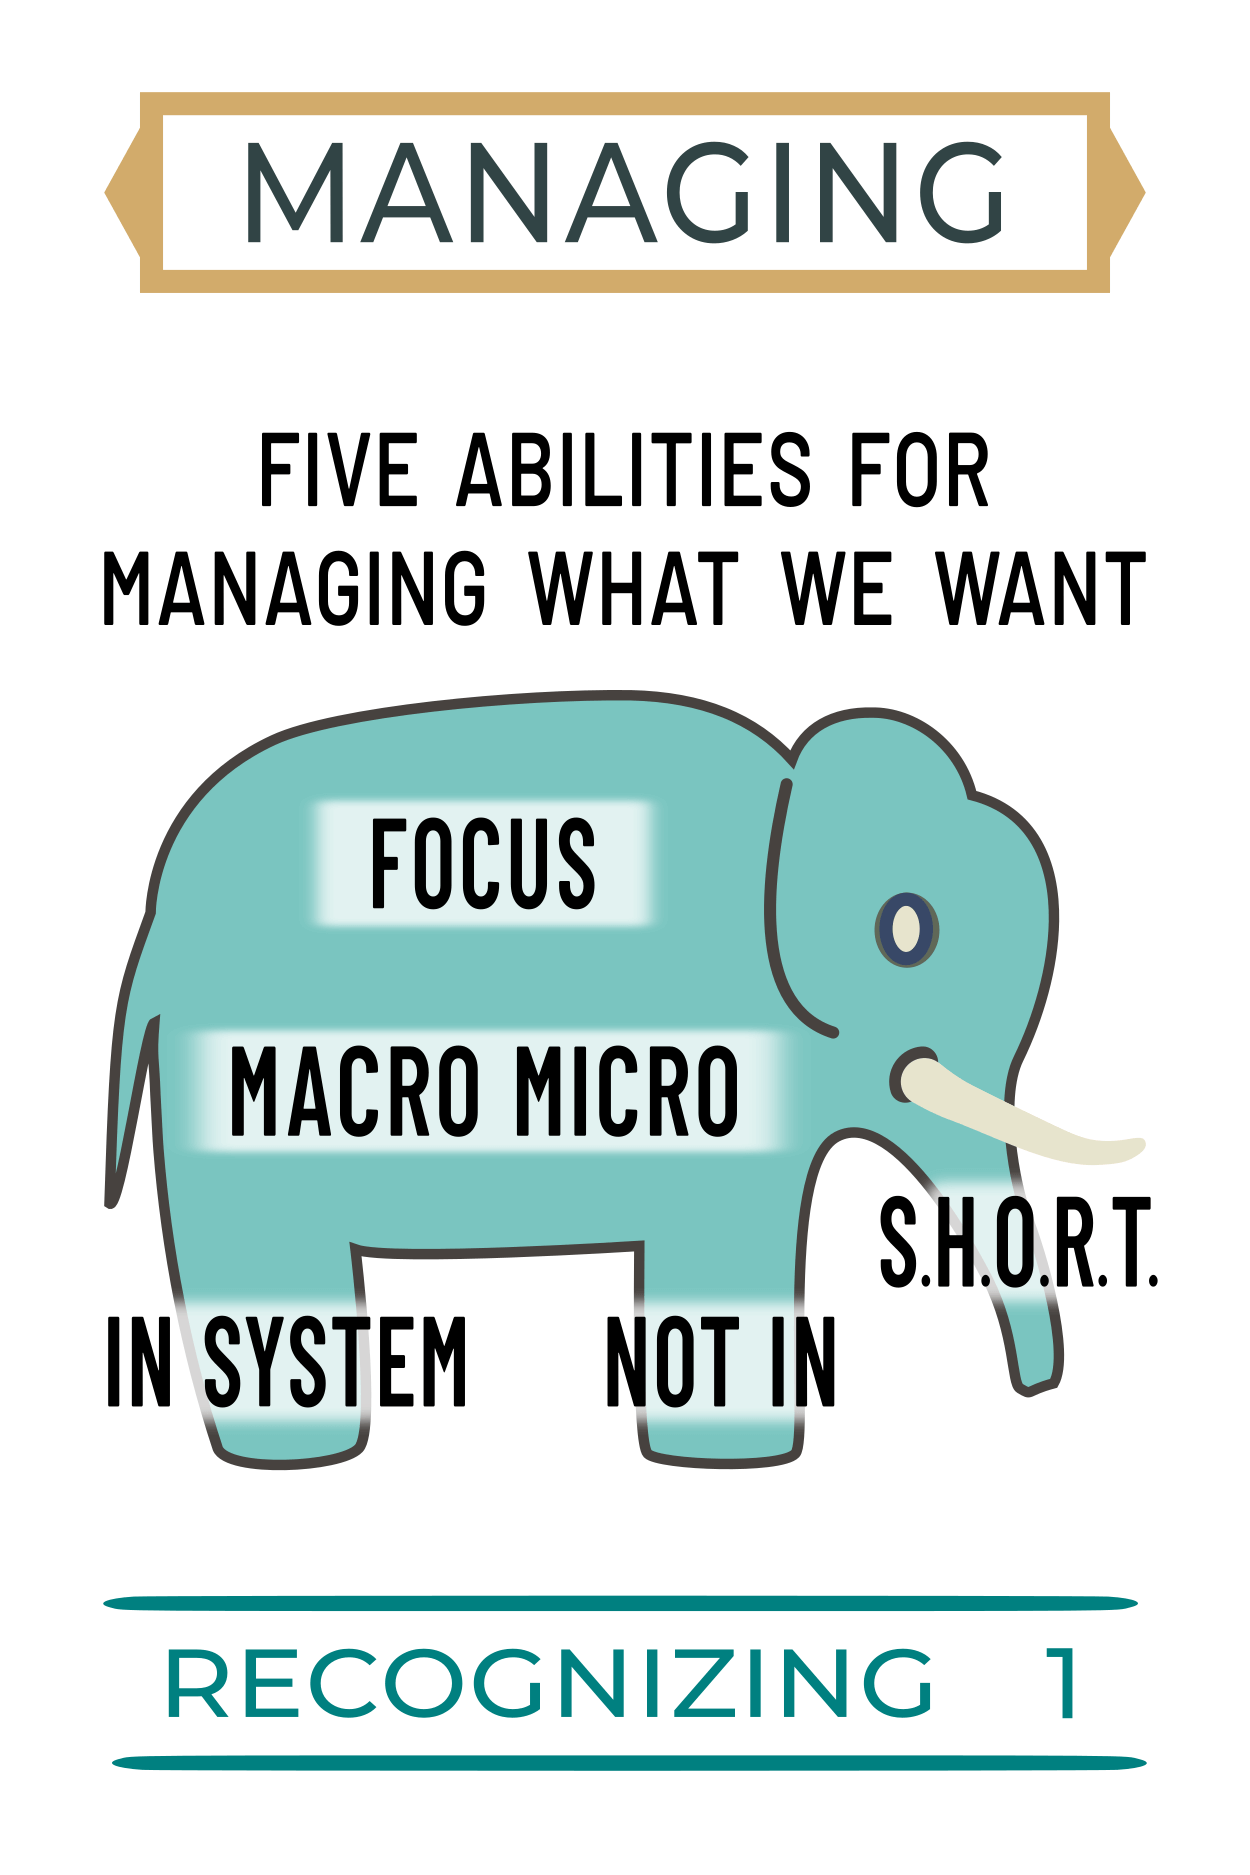 recognizing managing what we want